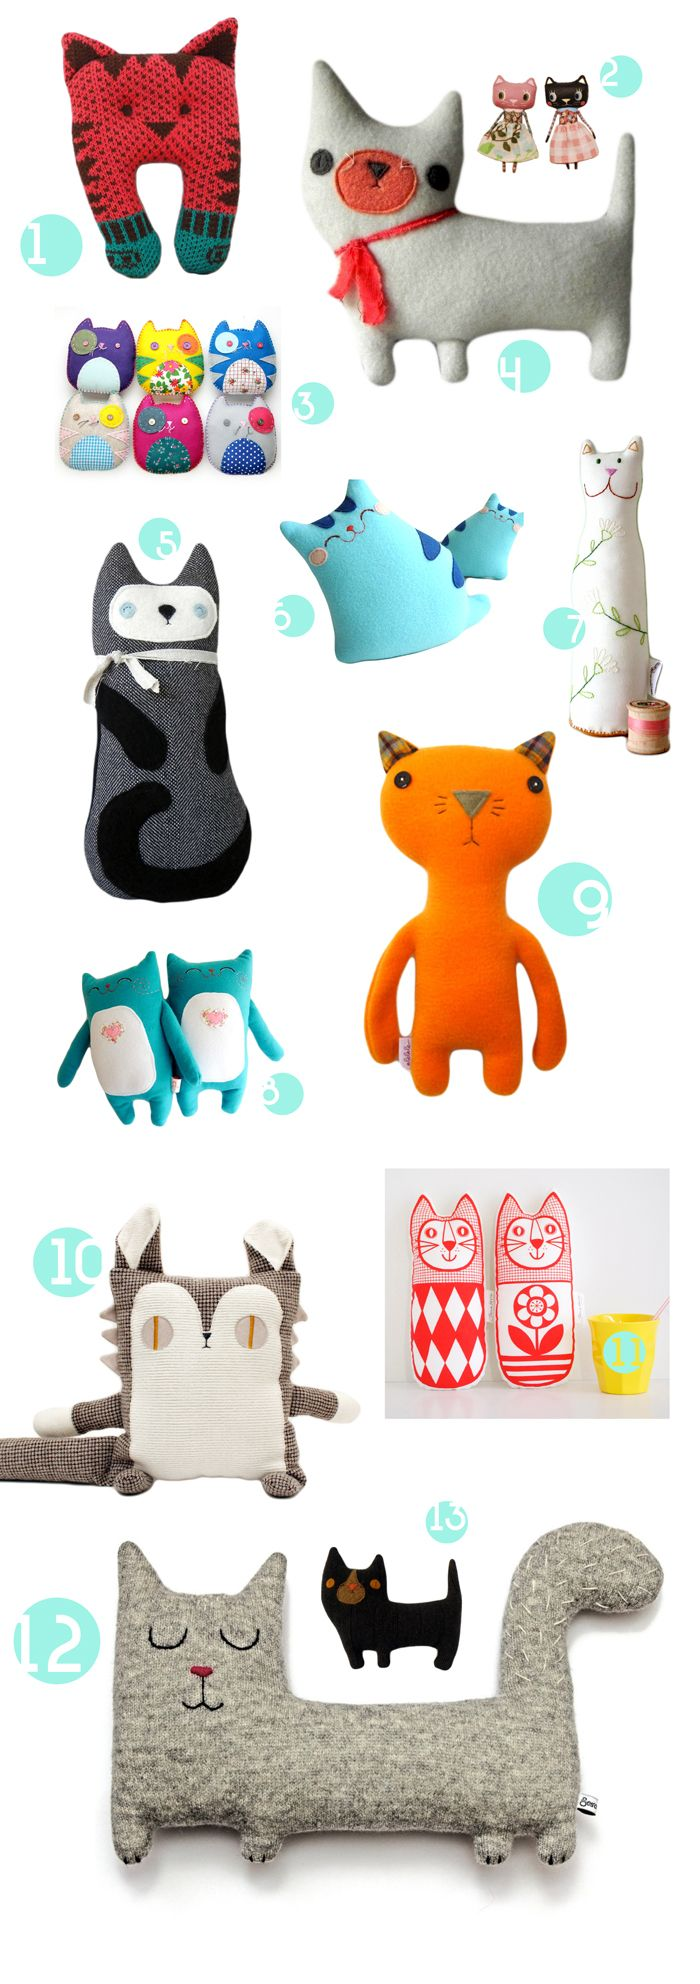 Plushies a kindling of plushie cats and kittens , my style designs